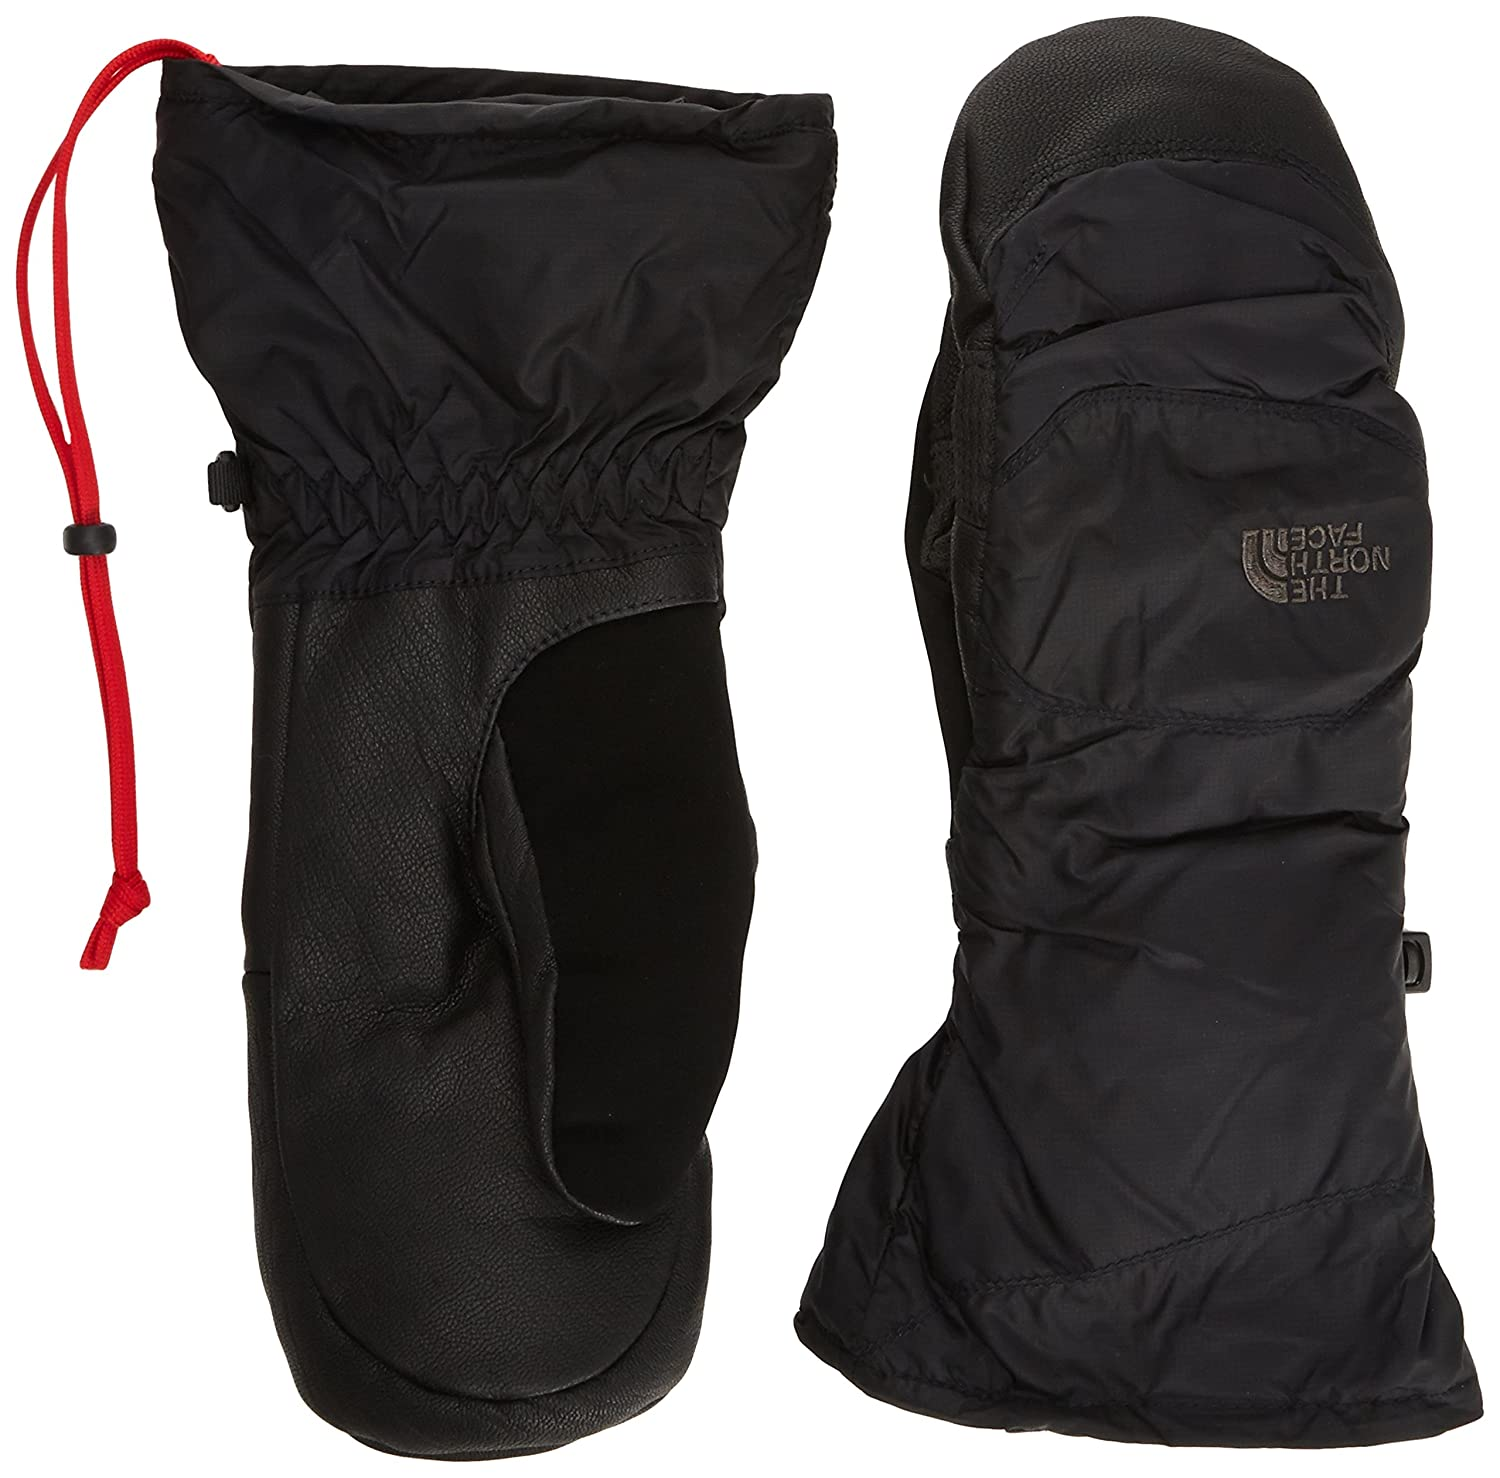 THE NORTH FACE Herren Fausthandschuhe Nuptse Mitt